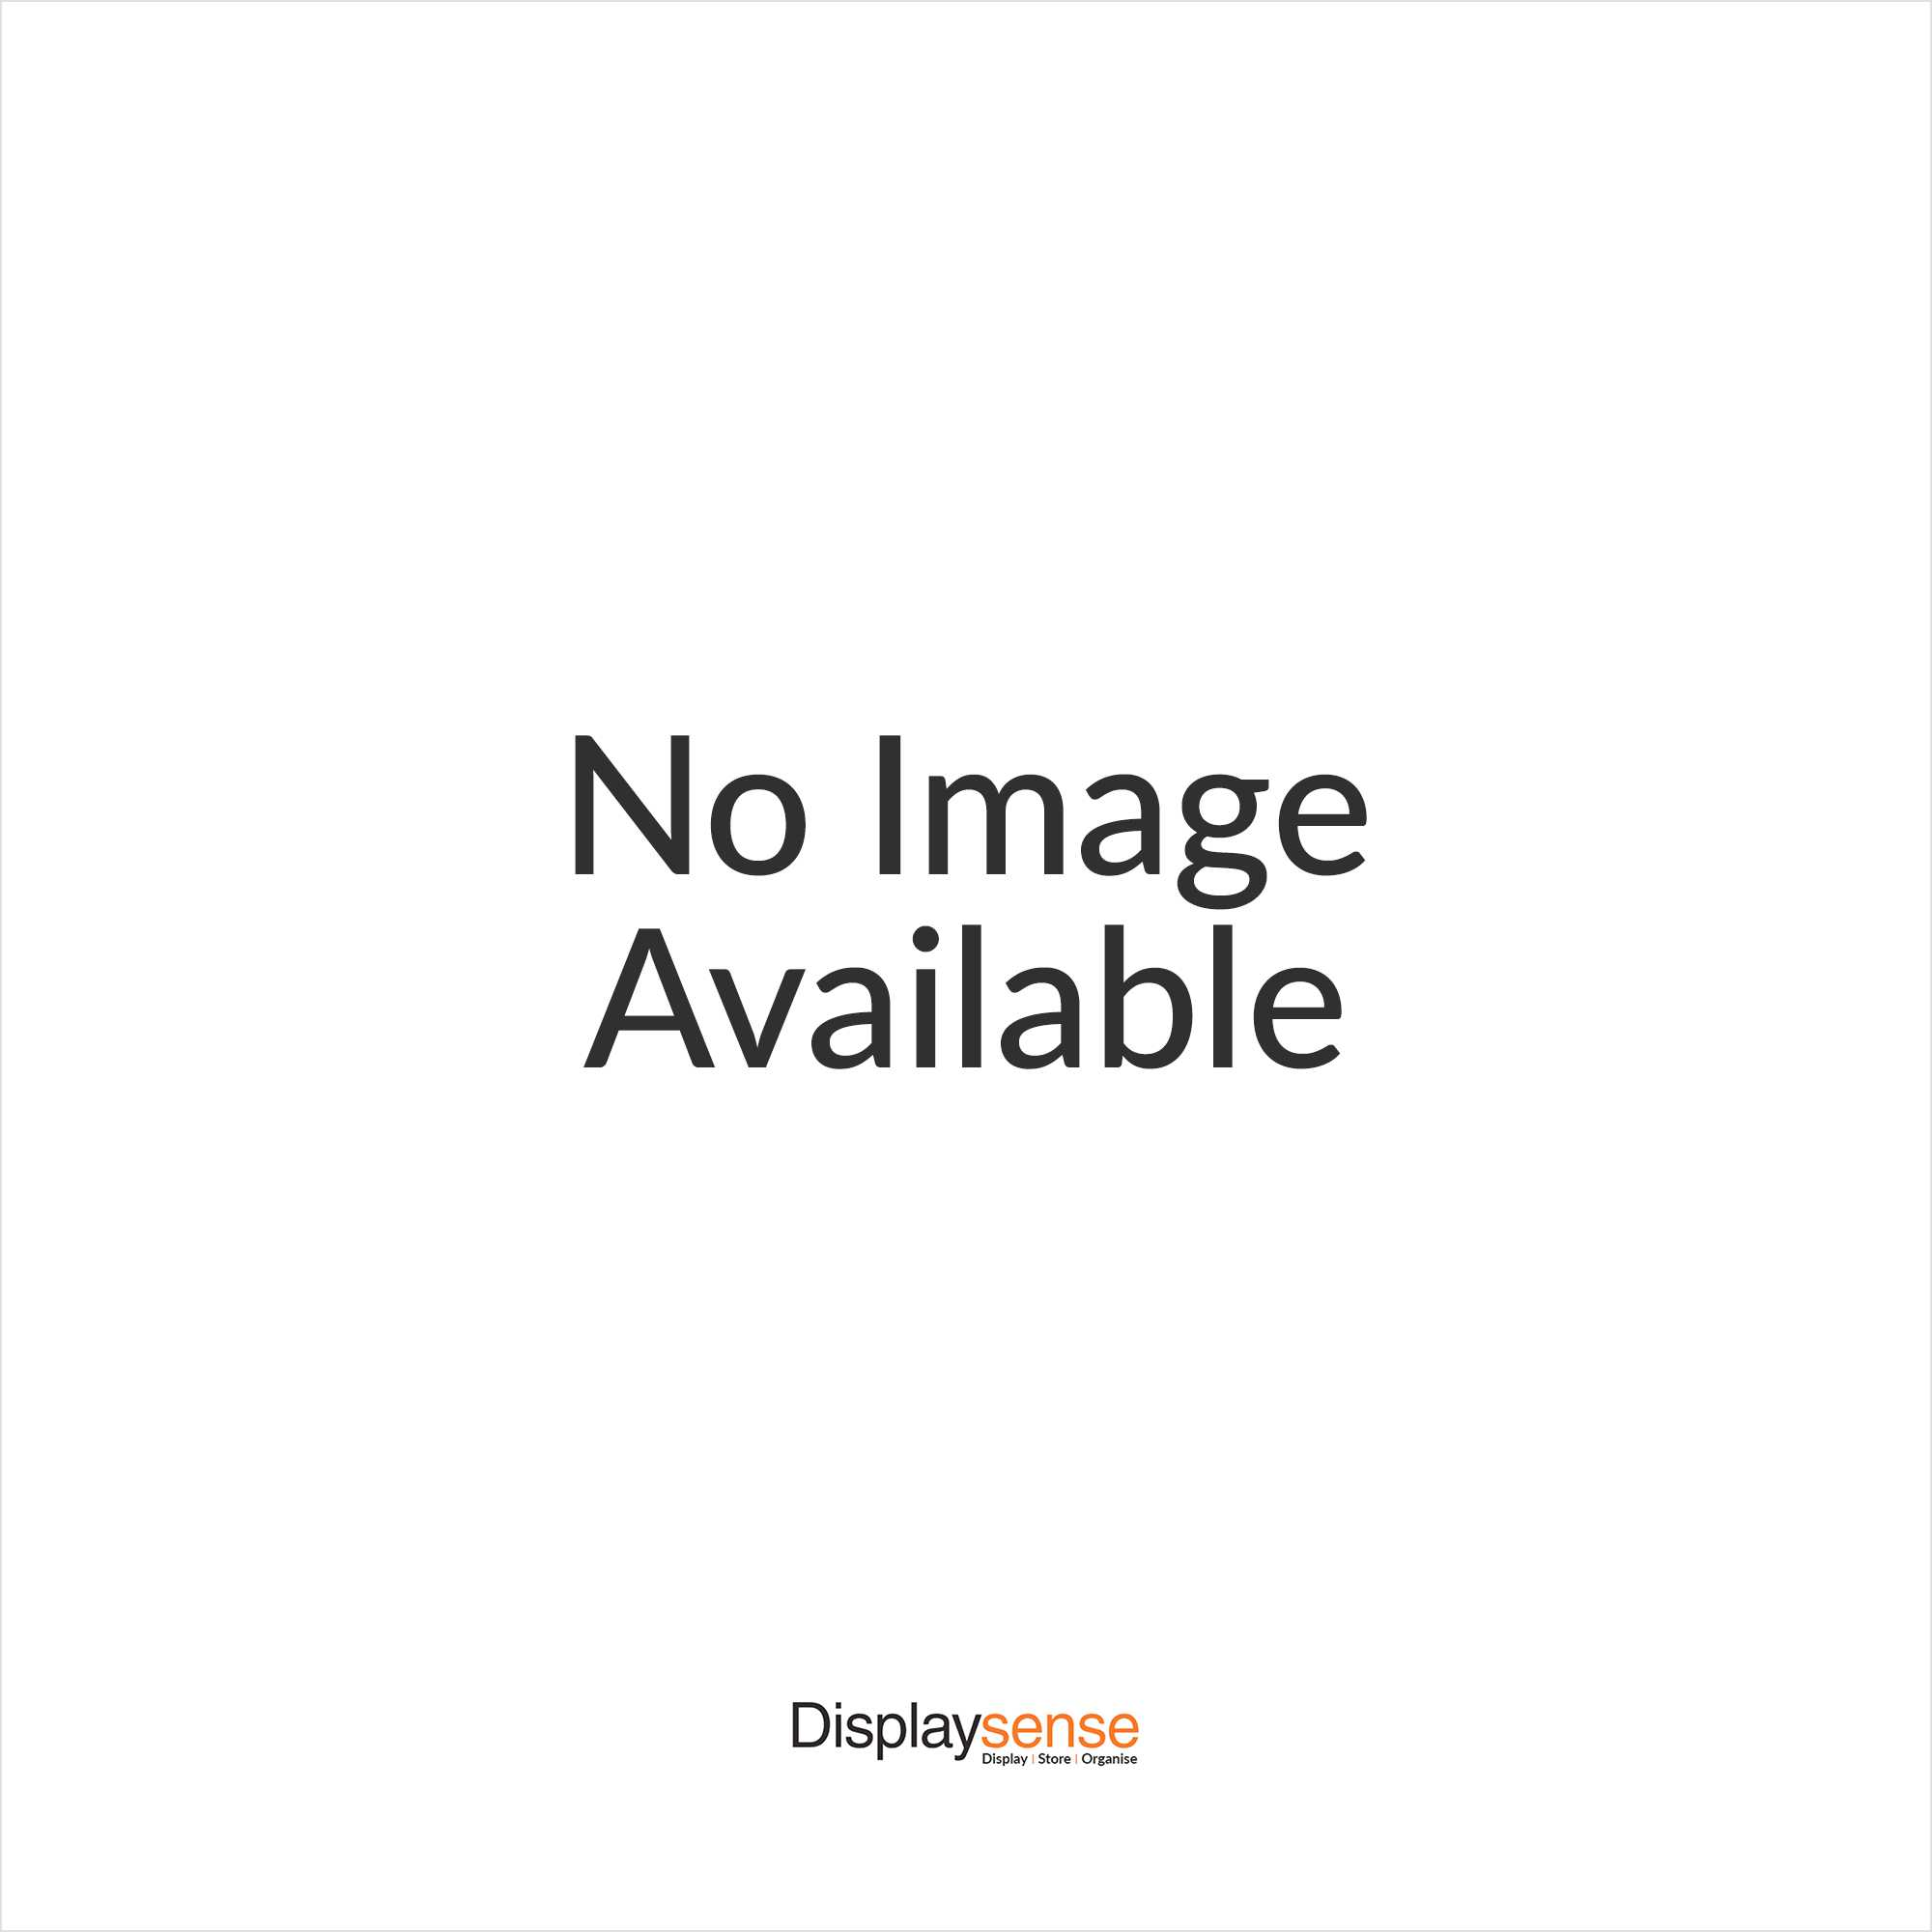 2 Sided Carousel Frame Only | Displaysense